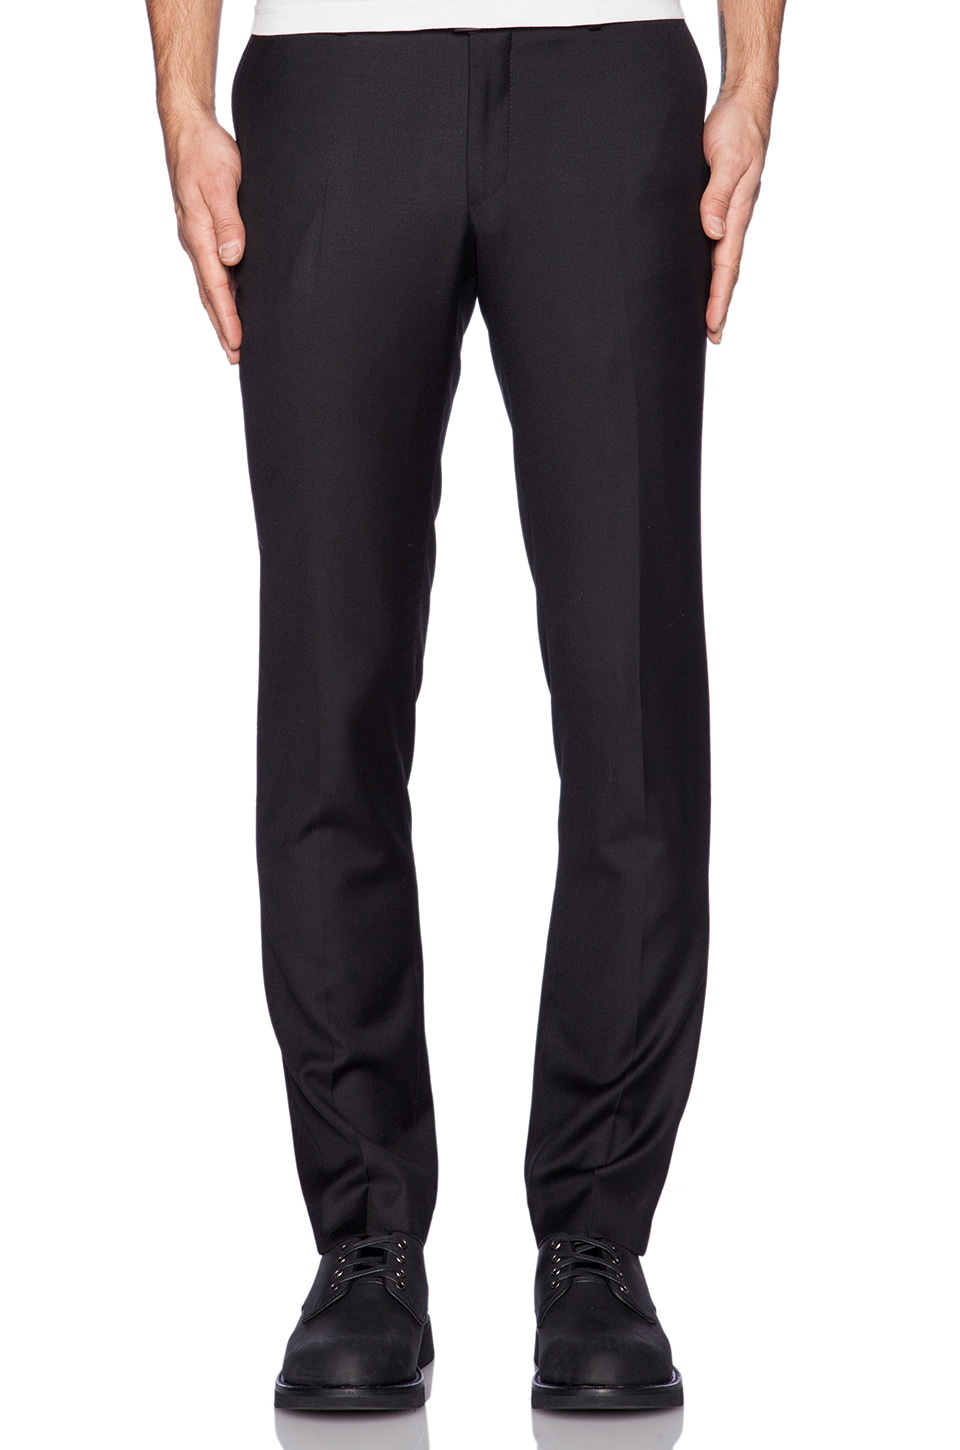 Pant Trouser by The Kooples